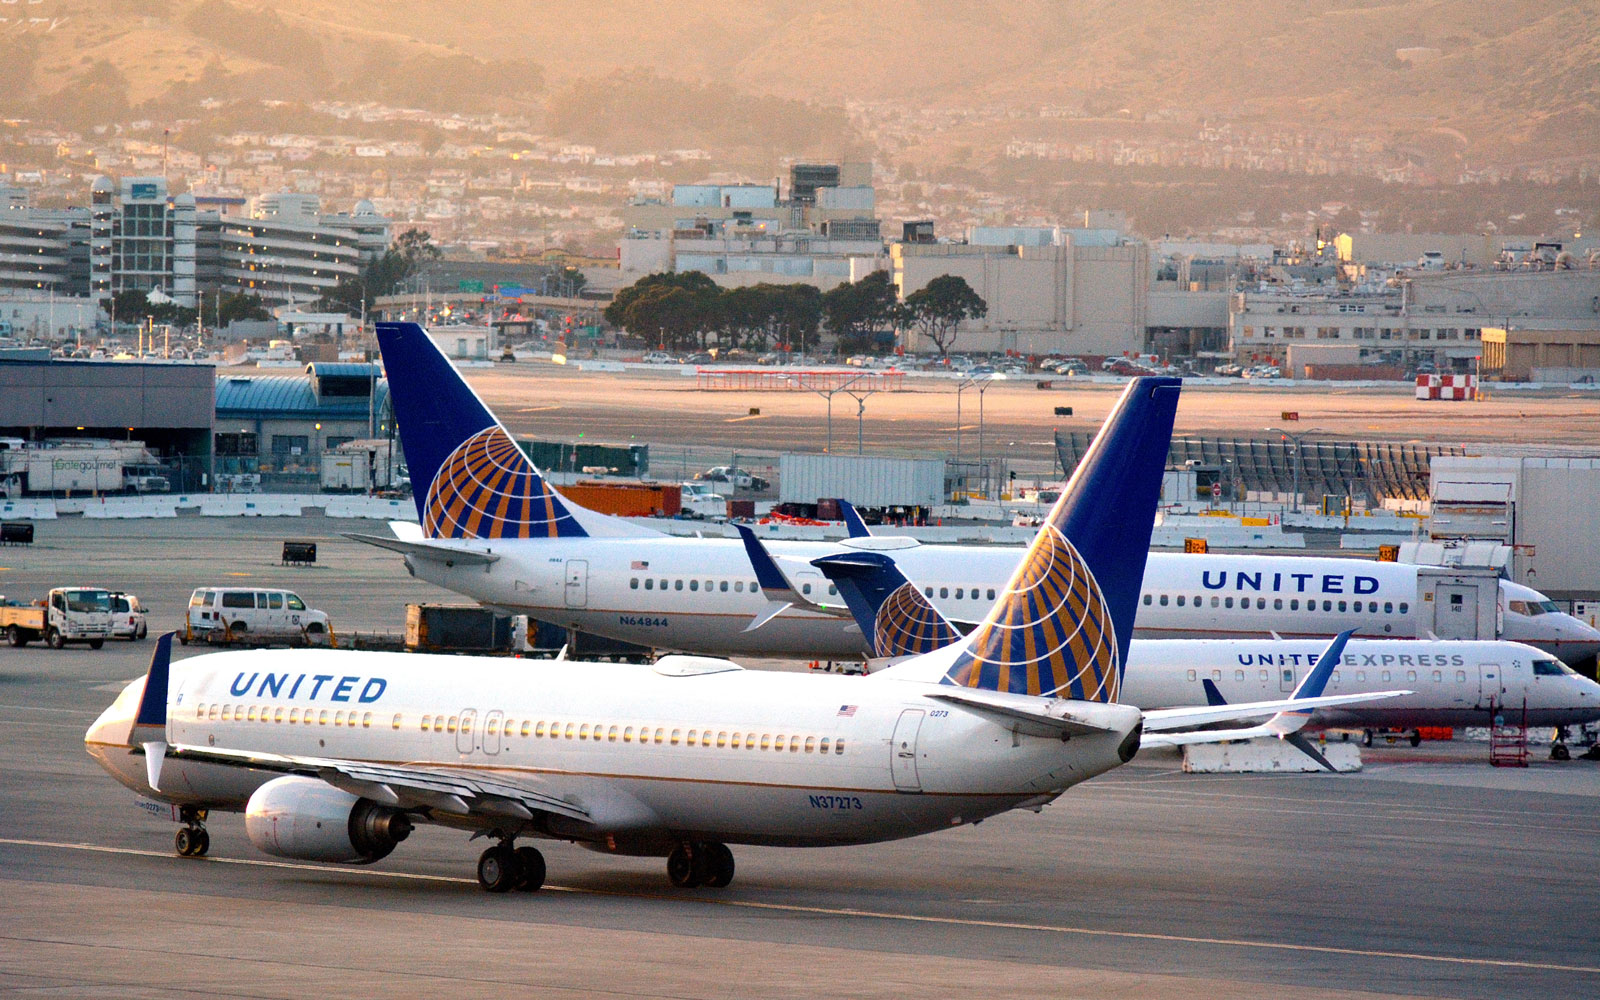 Countries React to United Airlines' Removal of Passenger, Outlining Rules for Passengers' Rights